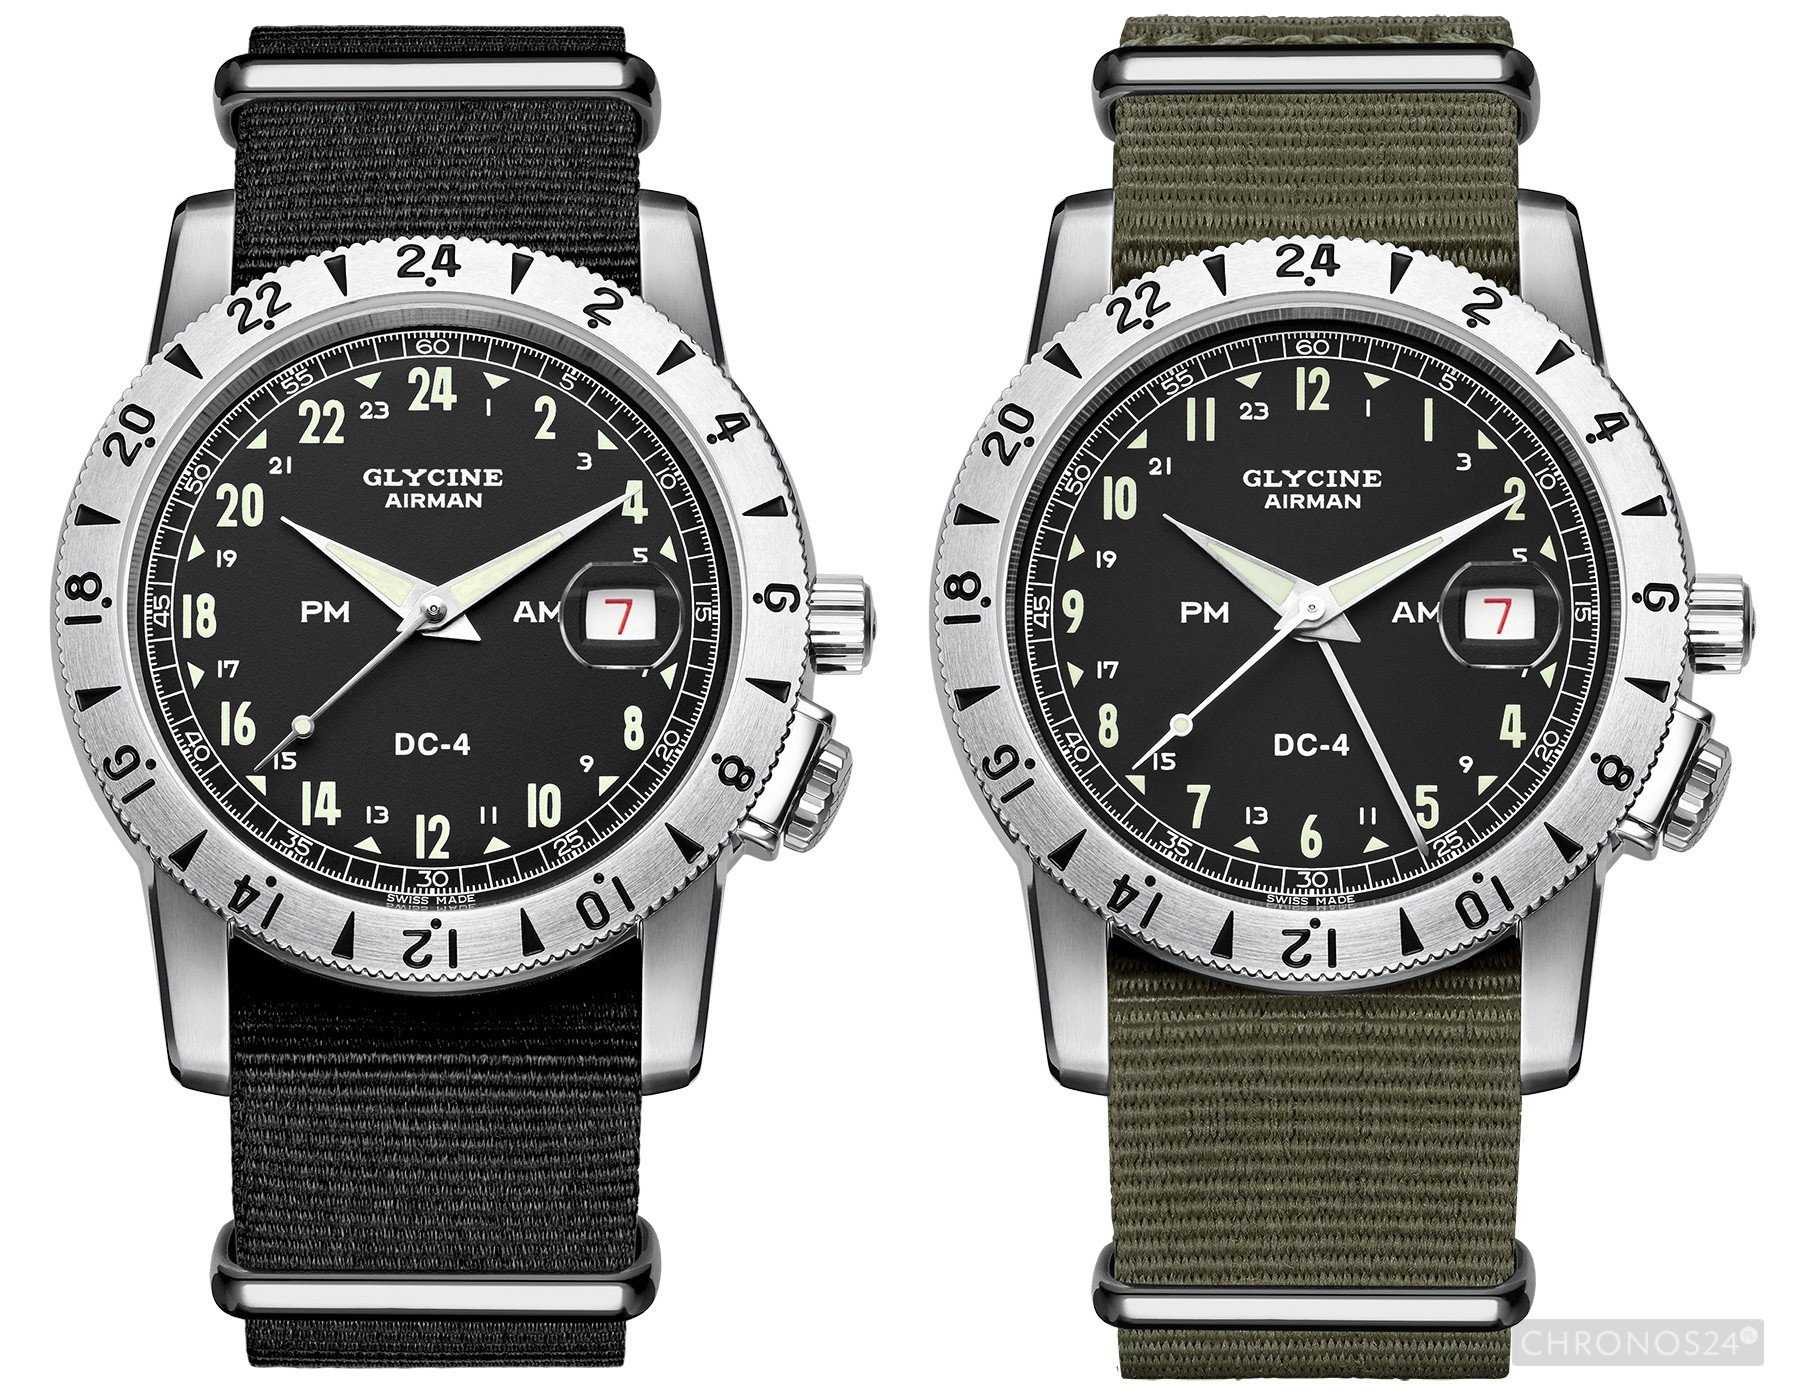 Novedades Glycine Glycine_Airman_DC4_versions_2015